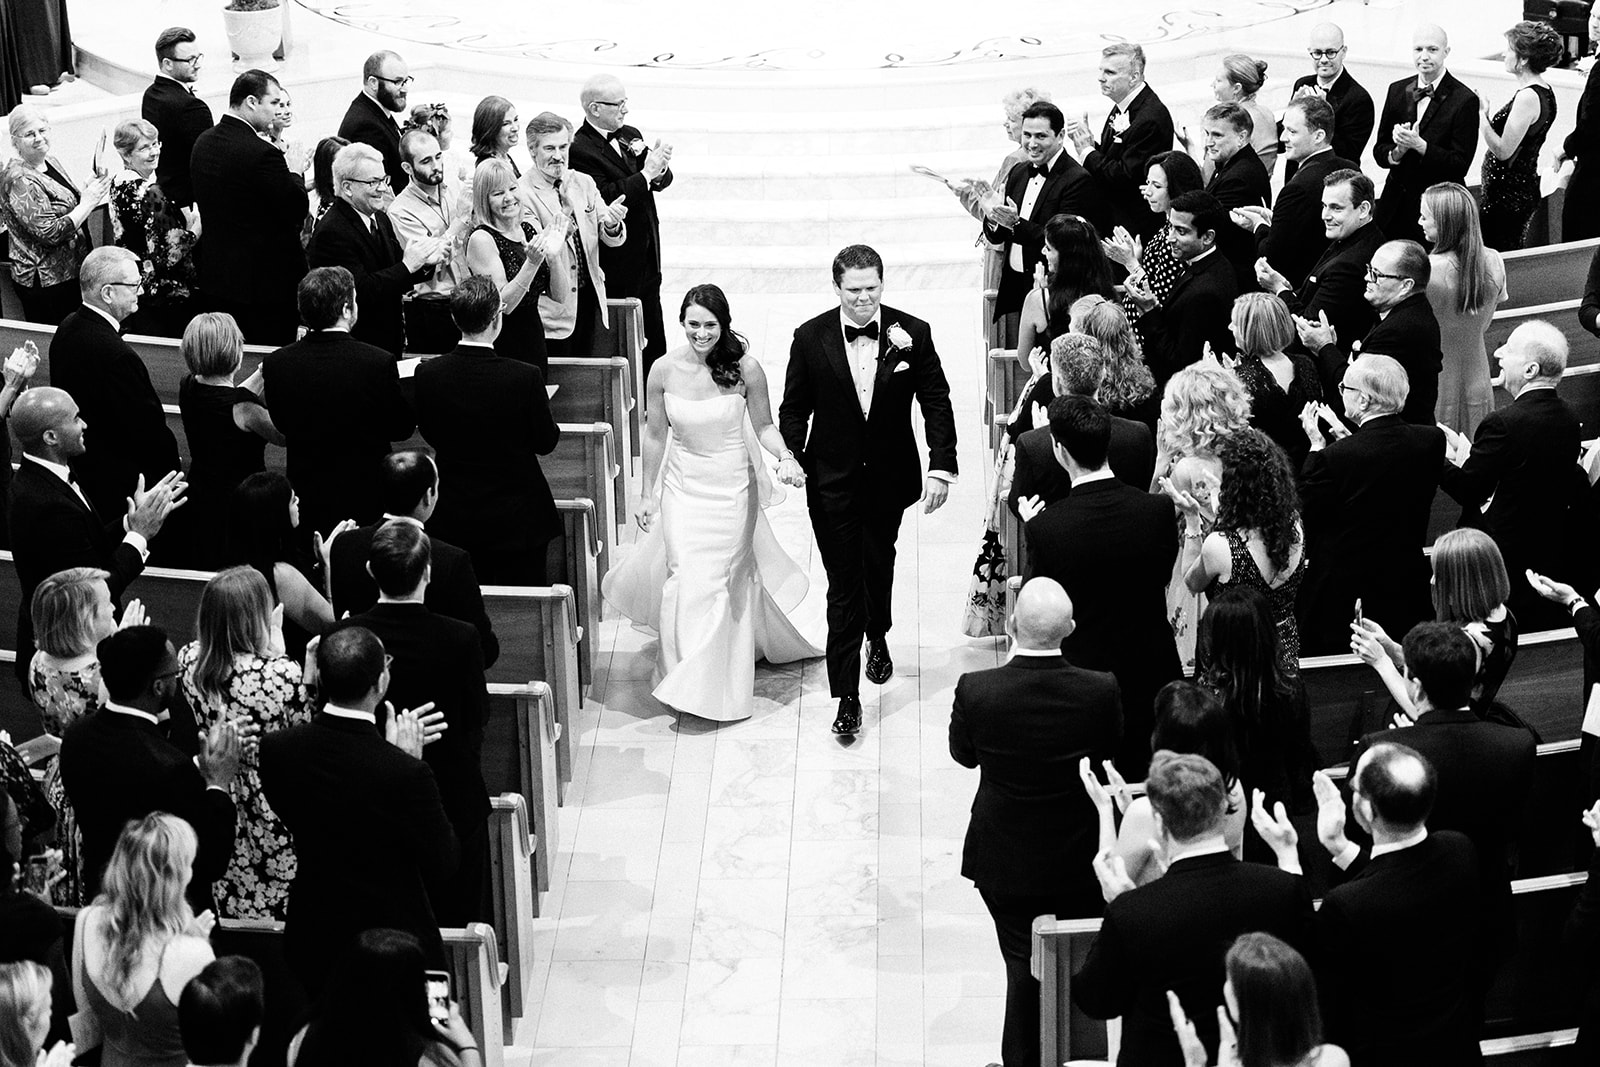 Shooting the recessional from the balcony allows us to frame the bride and groom with all of their guests during one of the most exciting parts of the day!